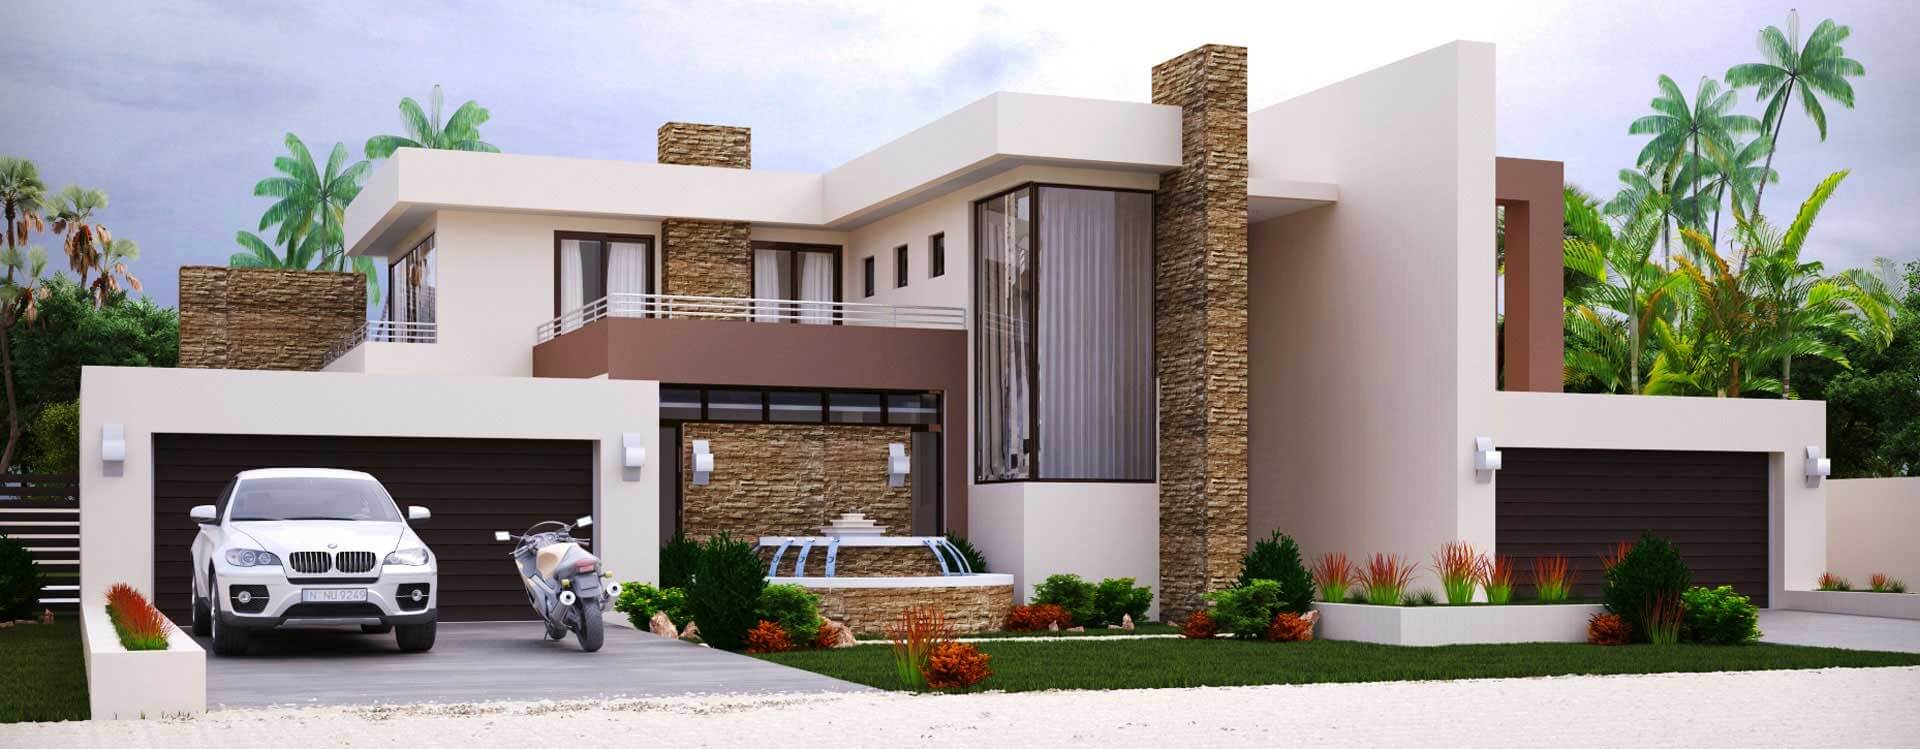 Nethouseplans affordable house plans for African house designs